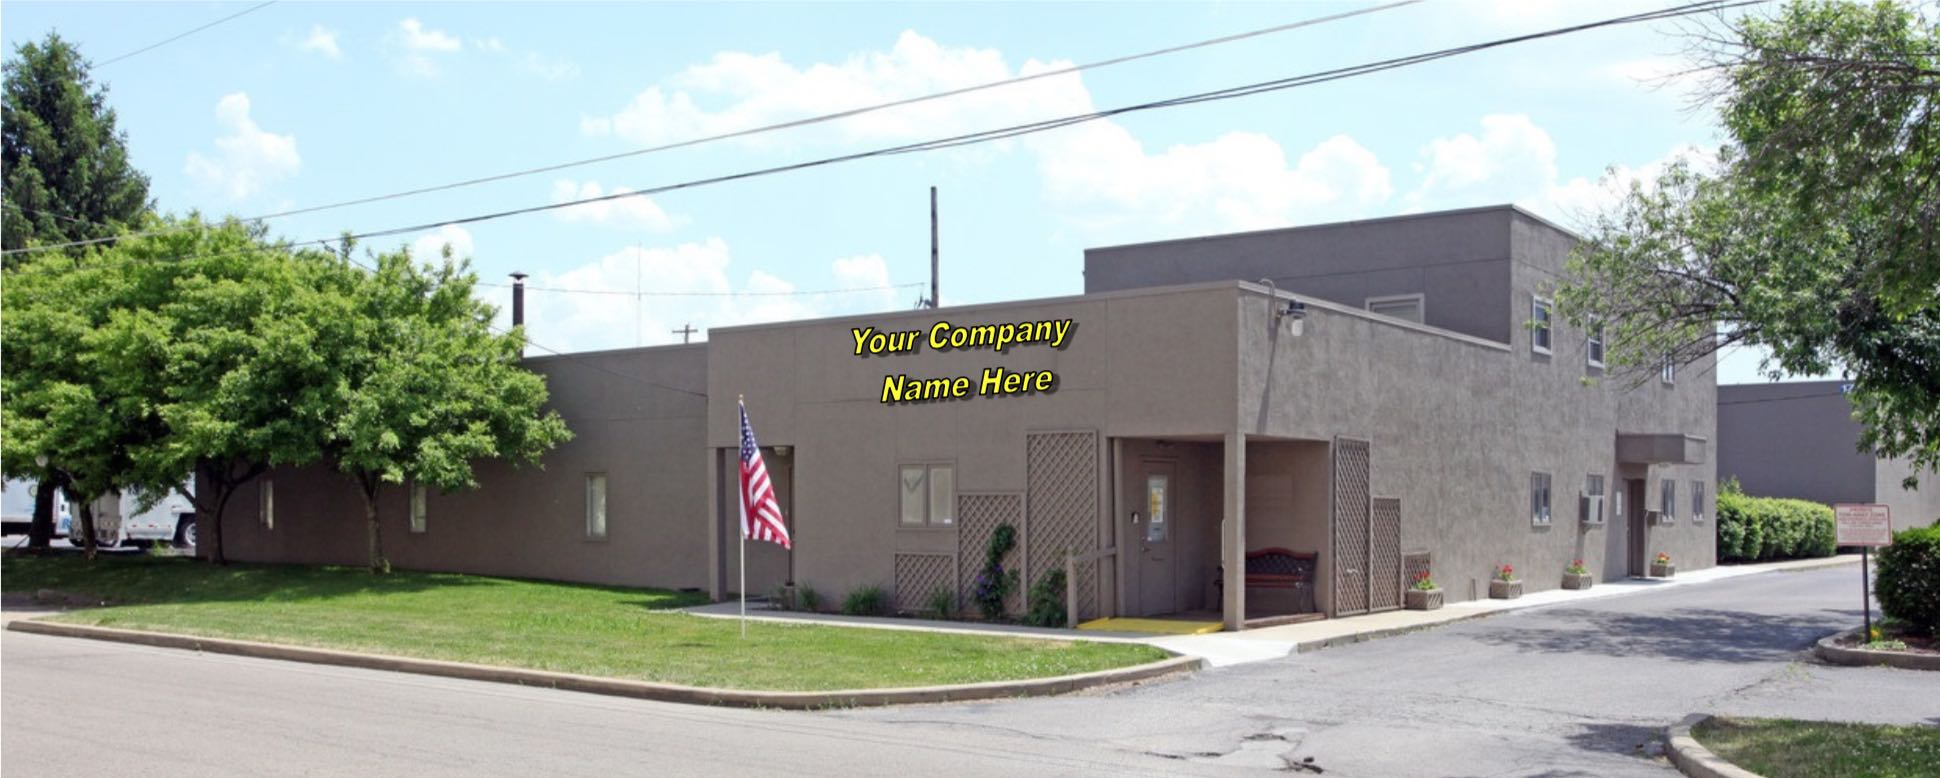 Business Properties for Sale or Lease - Westerville Area